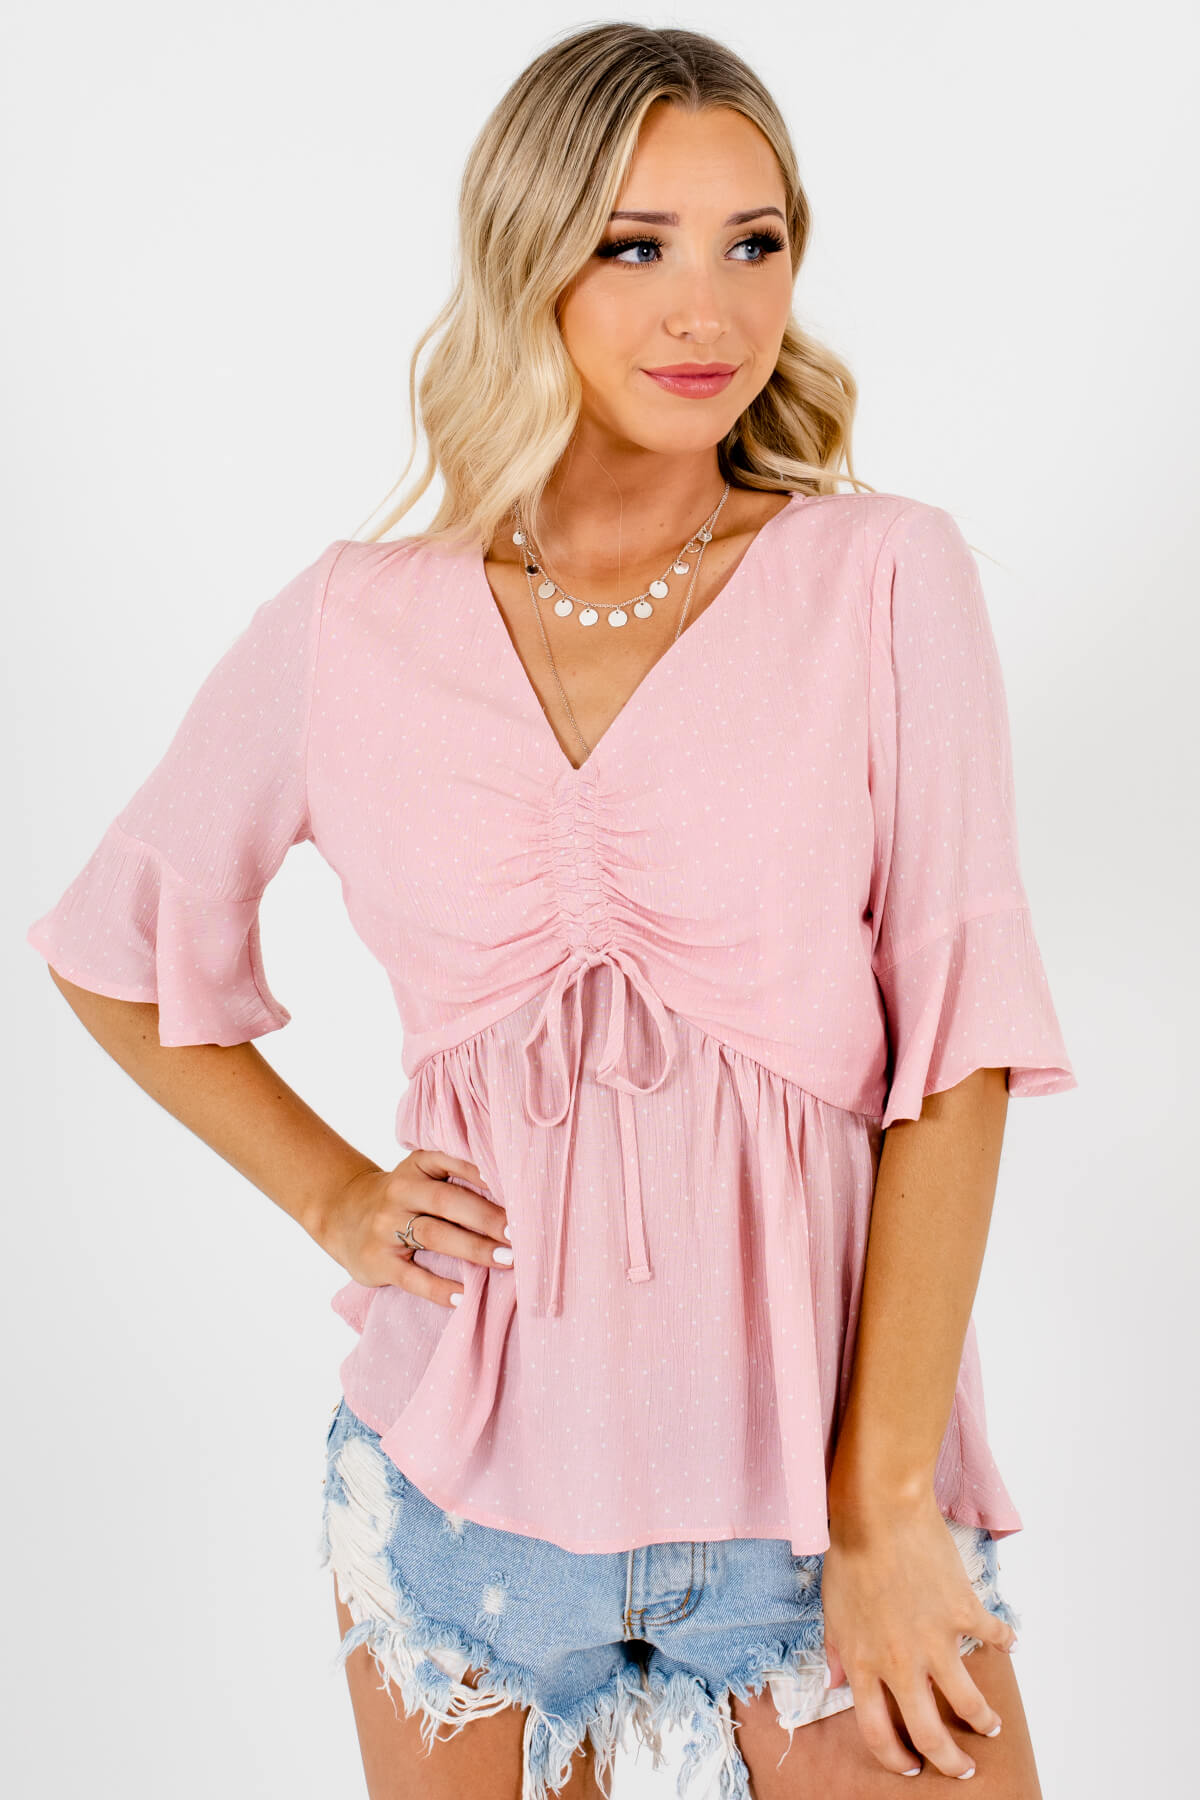 Pink White Polka Dot Print Ruched Tops Affordable Online Boutique